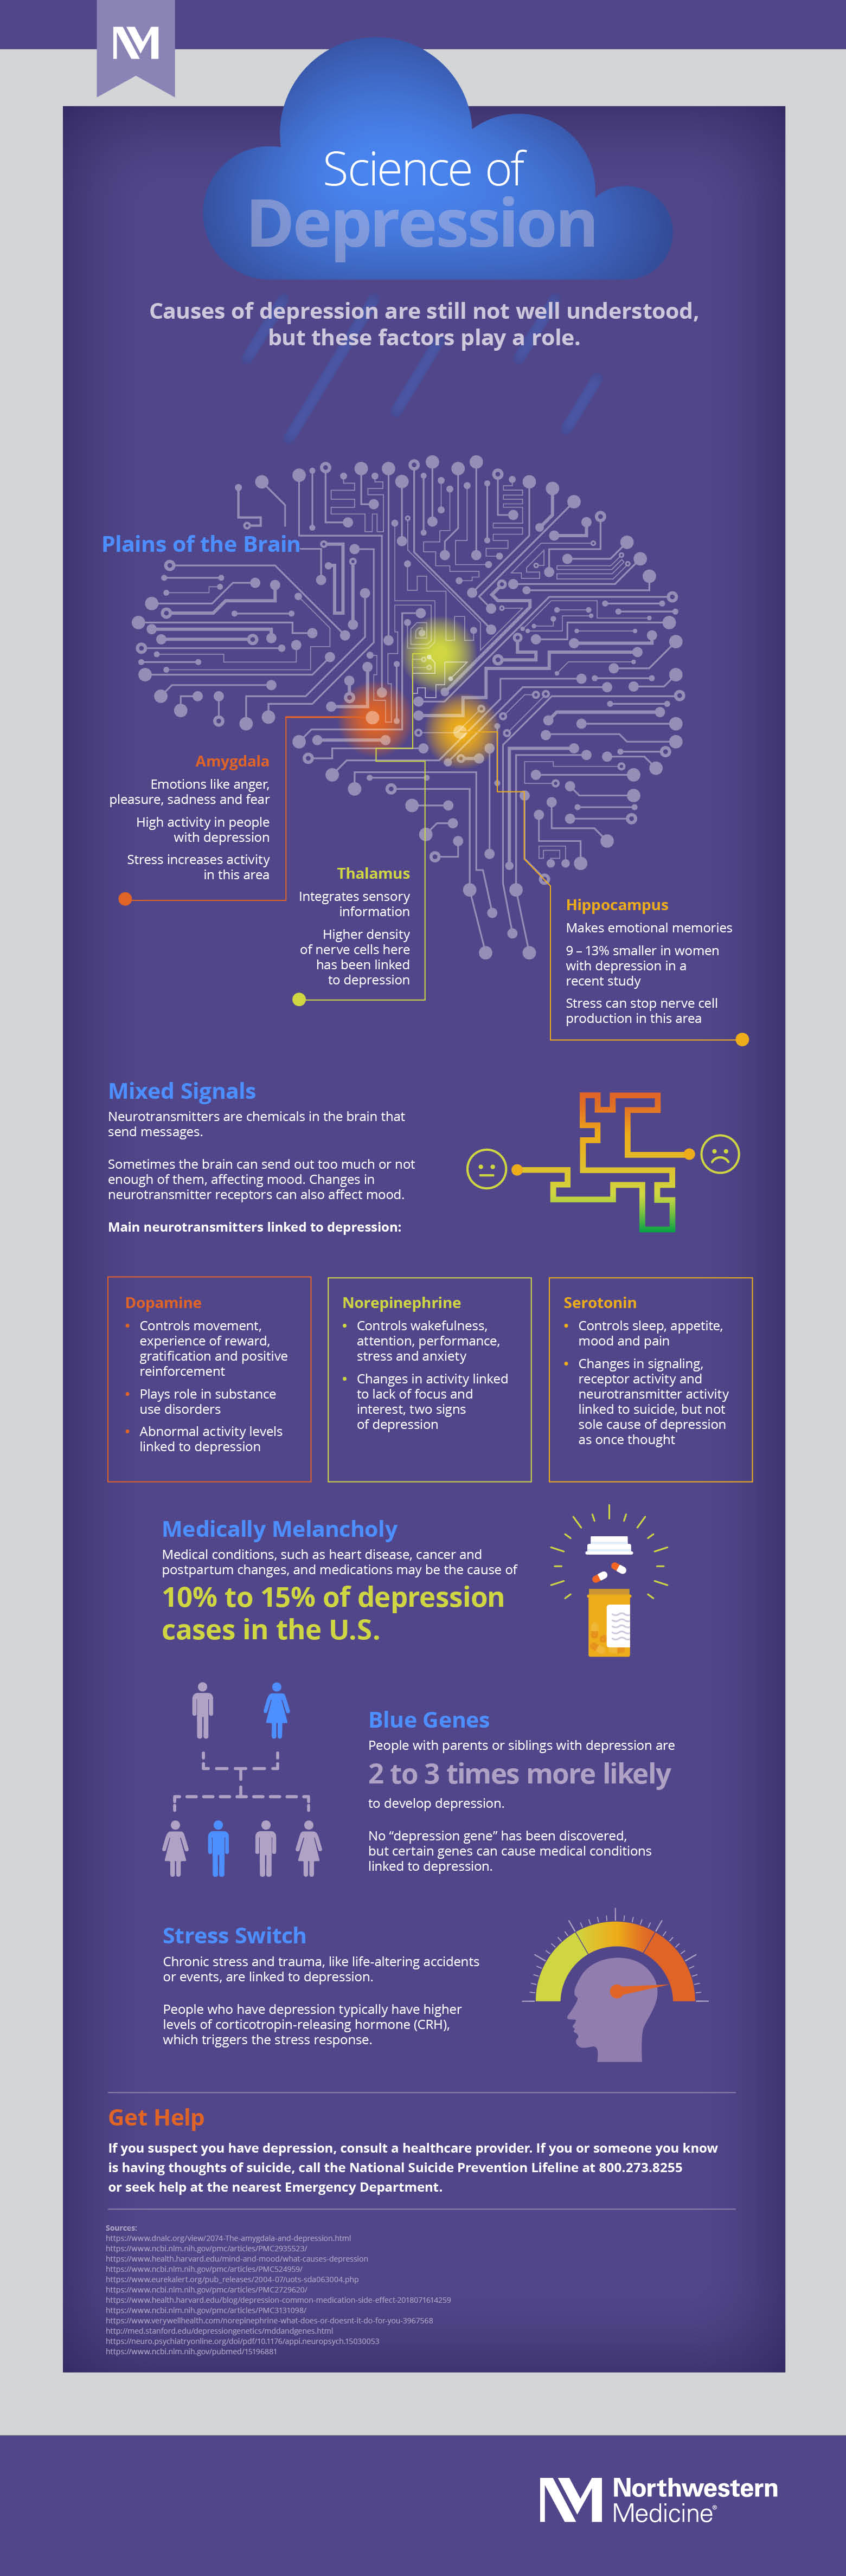 nm-science-of-depression_infographic